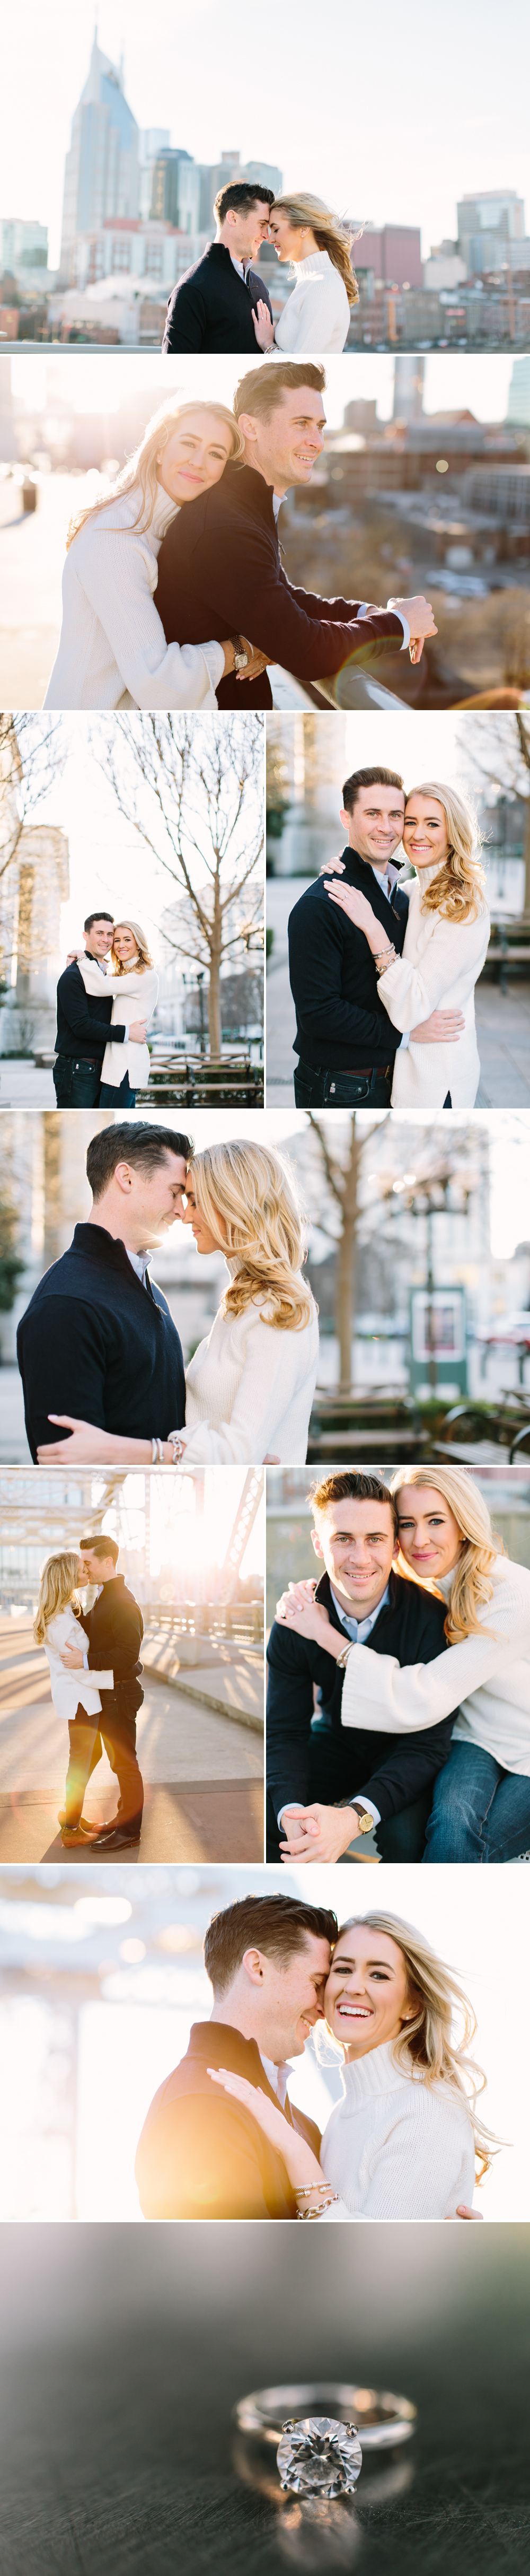 Nashville_Engagement_Photographer_Rachel_Moore_2.jpg